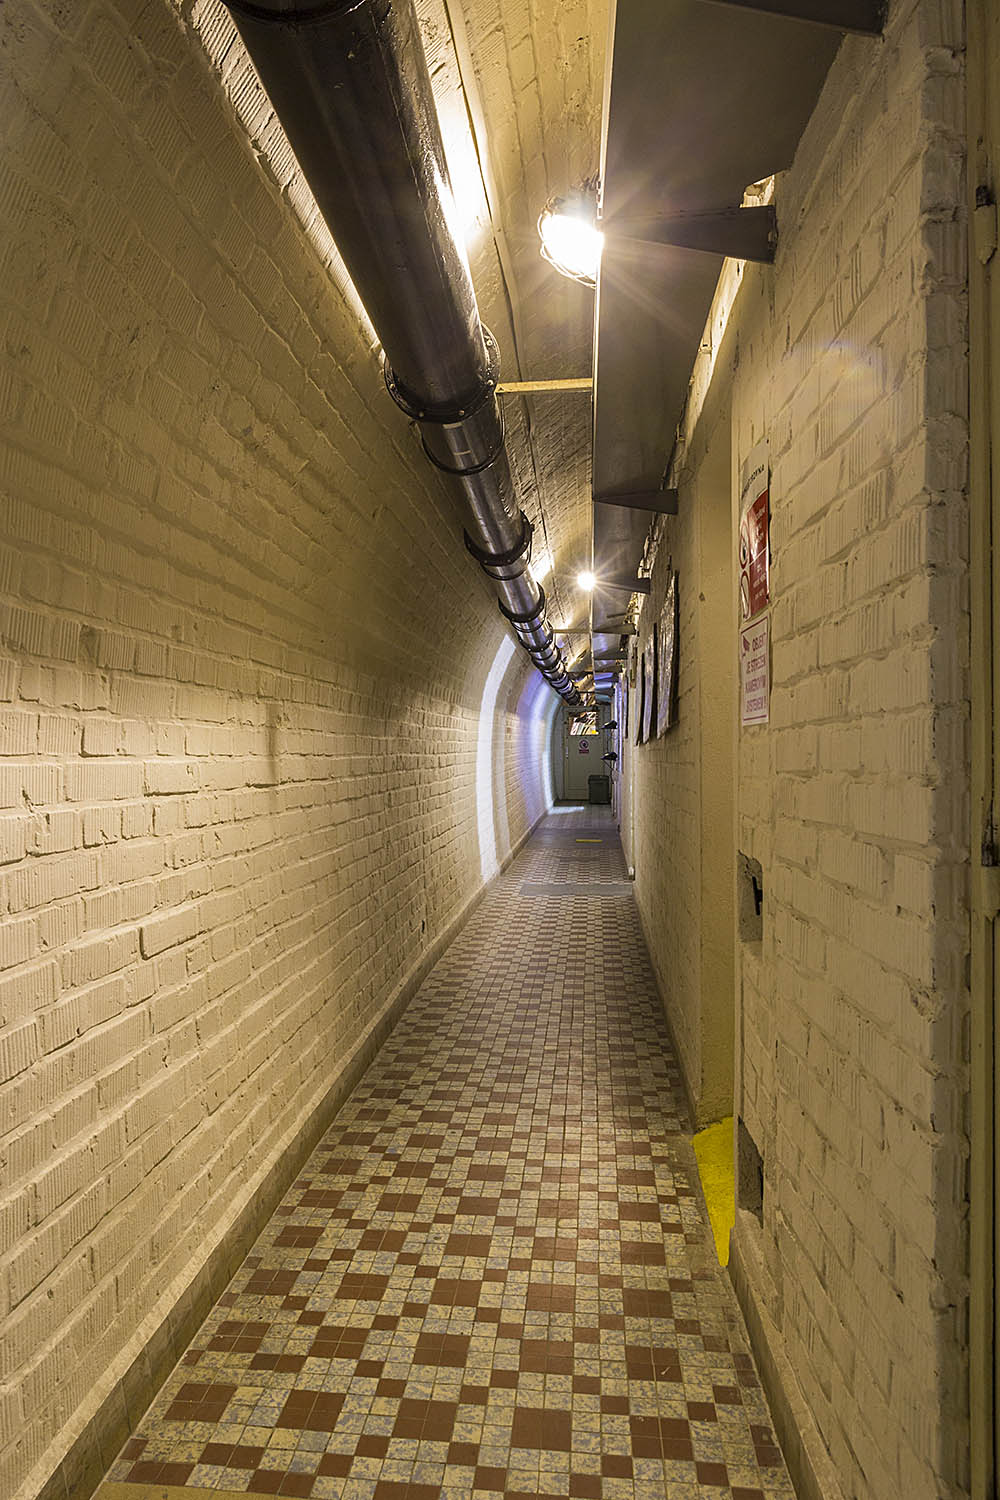 Corridors are almost endless